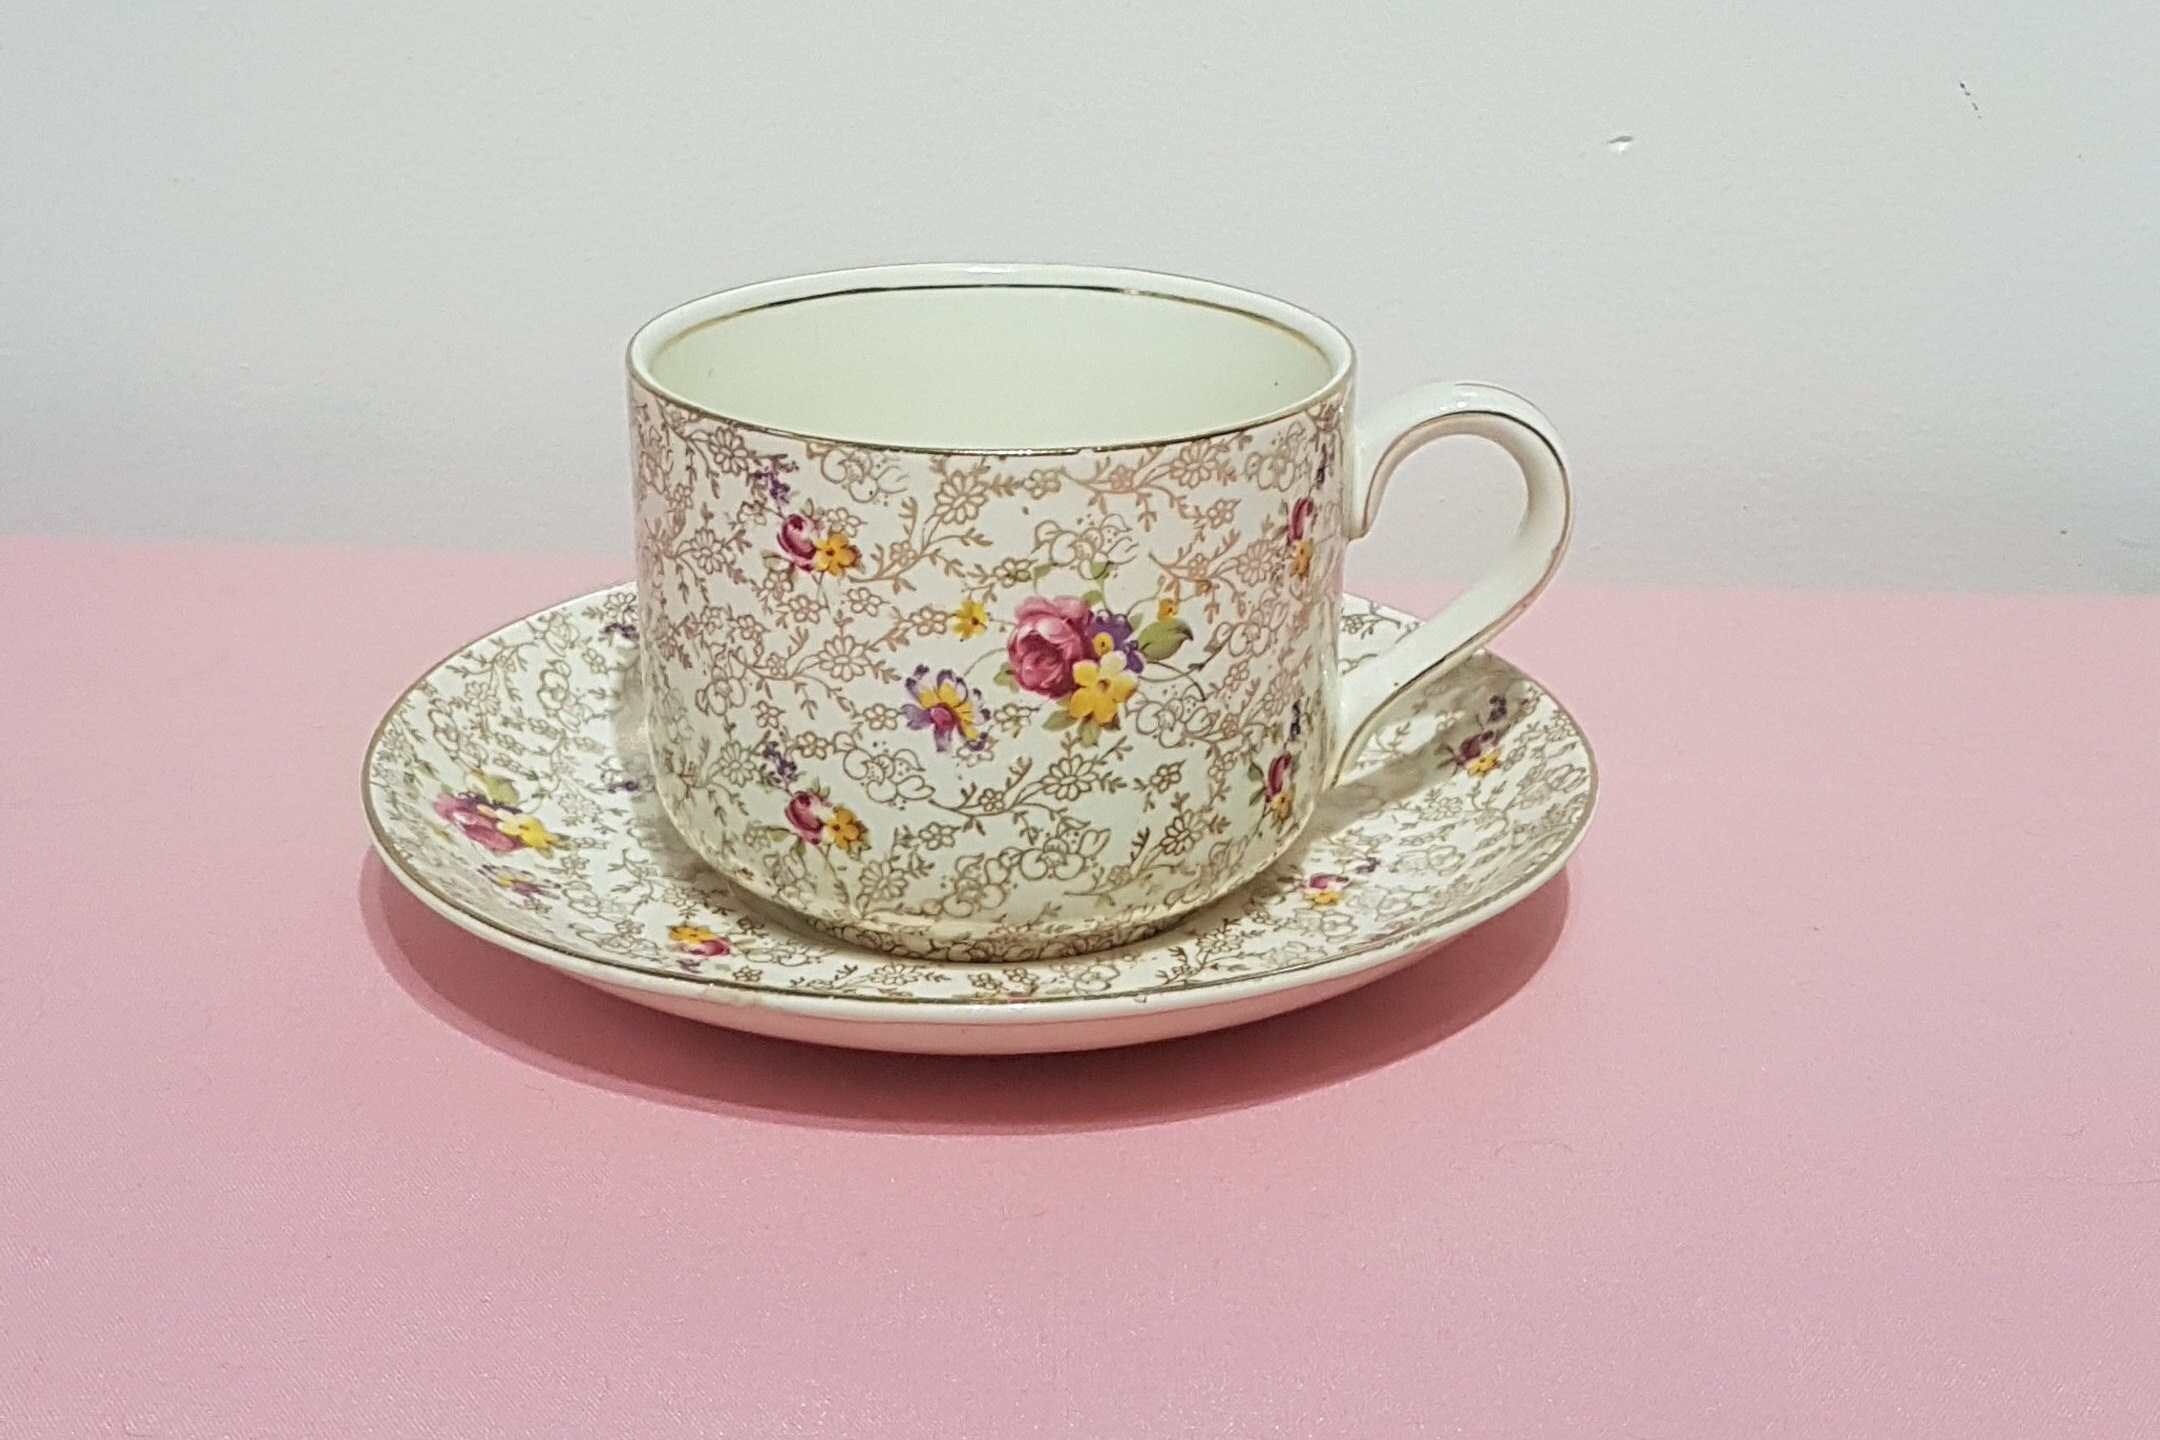 Large Tea Cup Planter James Kent Pearl Delight Gold Chintz Floral Chintz English Tea